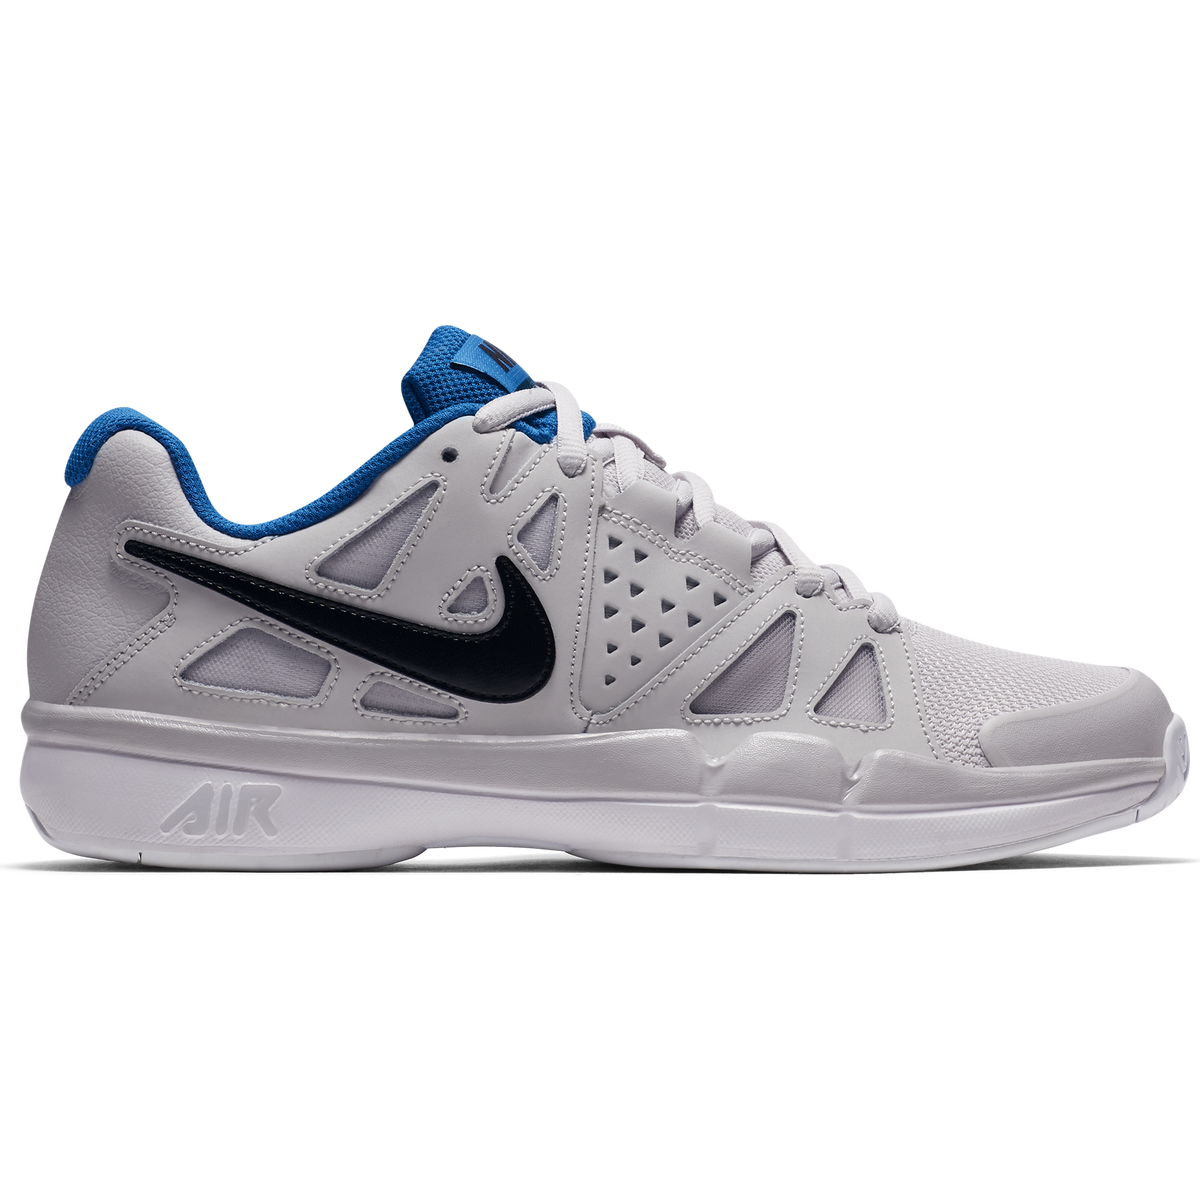 Nike Air Vapor Advantage Men s Tennis Shoe - White Black aa9b10fac